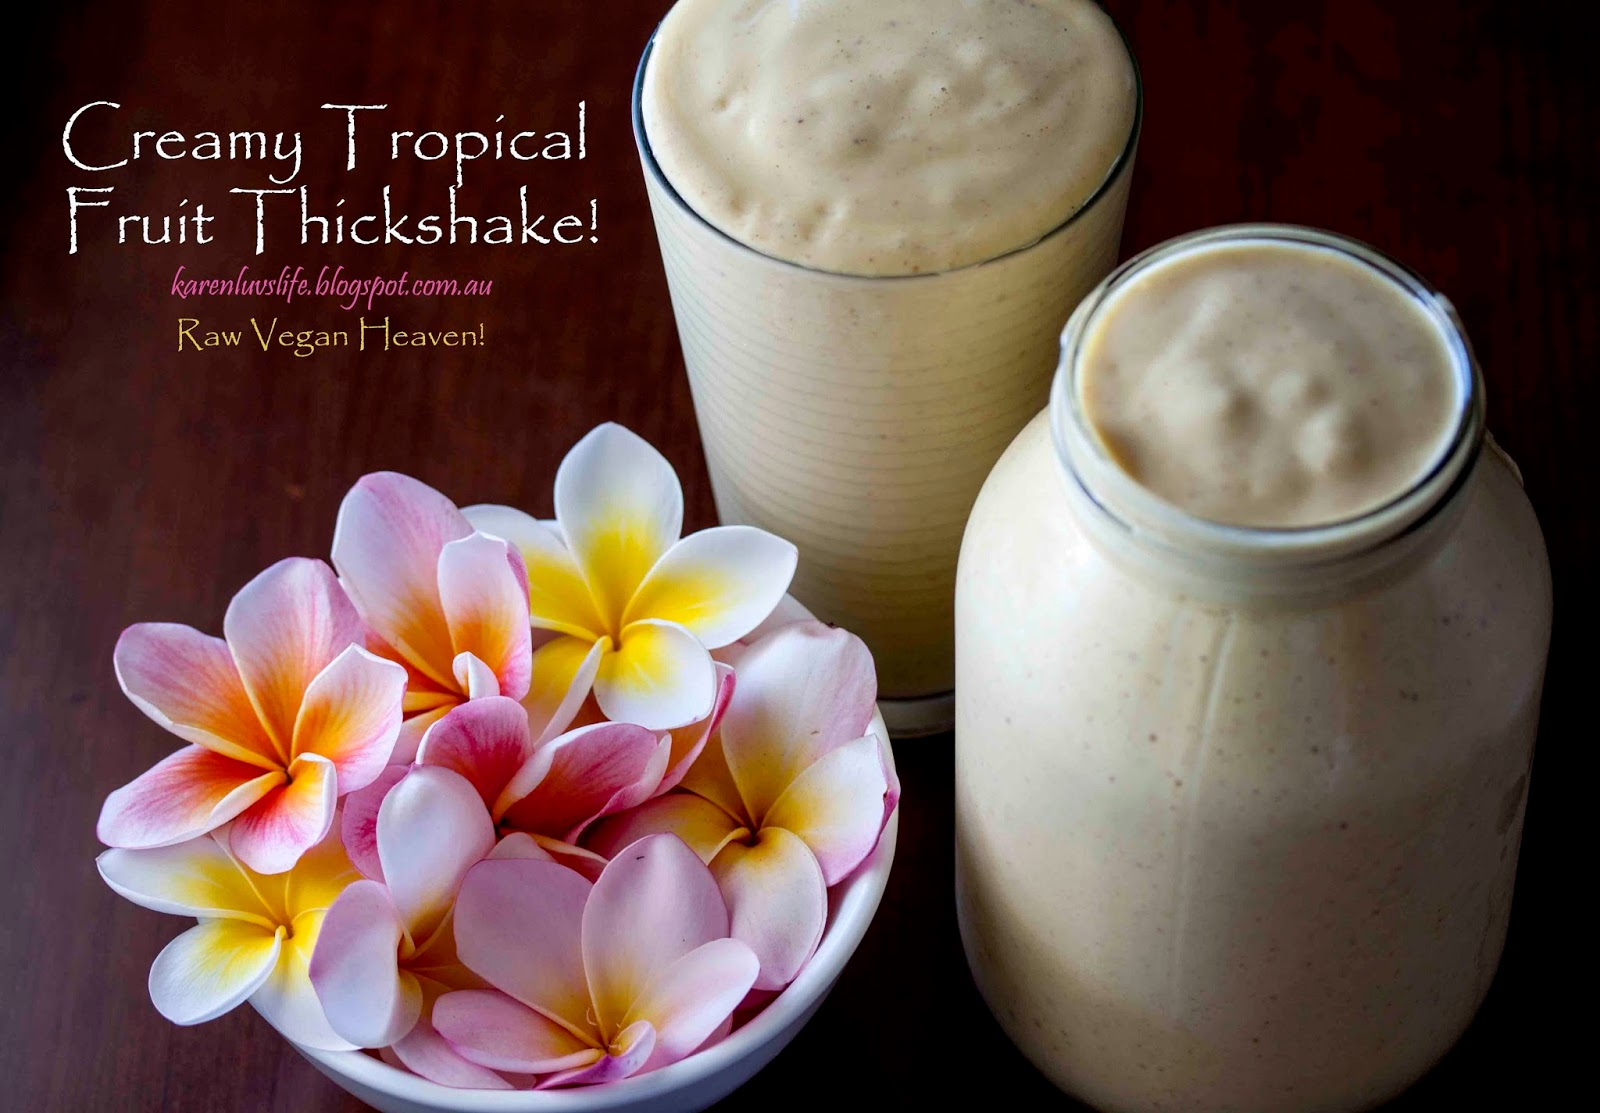 Creamy Tropical Fruit Thickshake - Raw Vegan